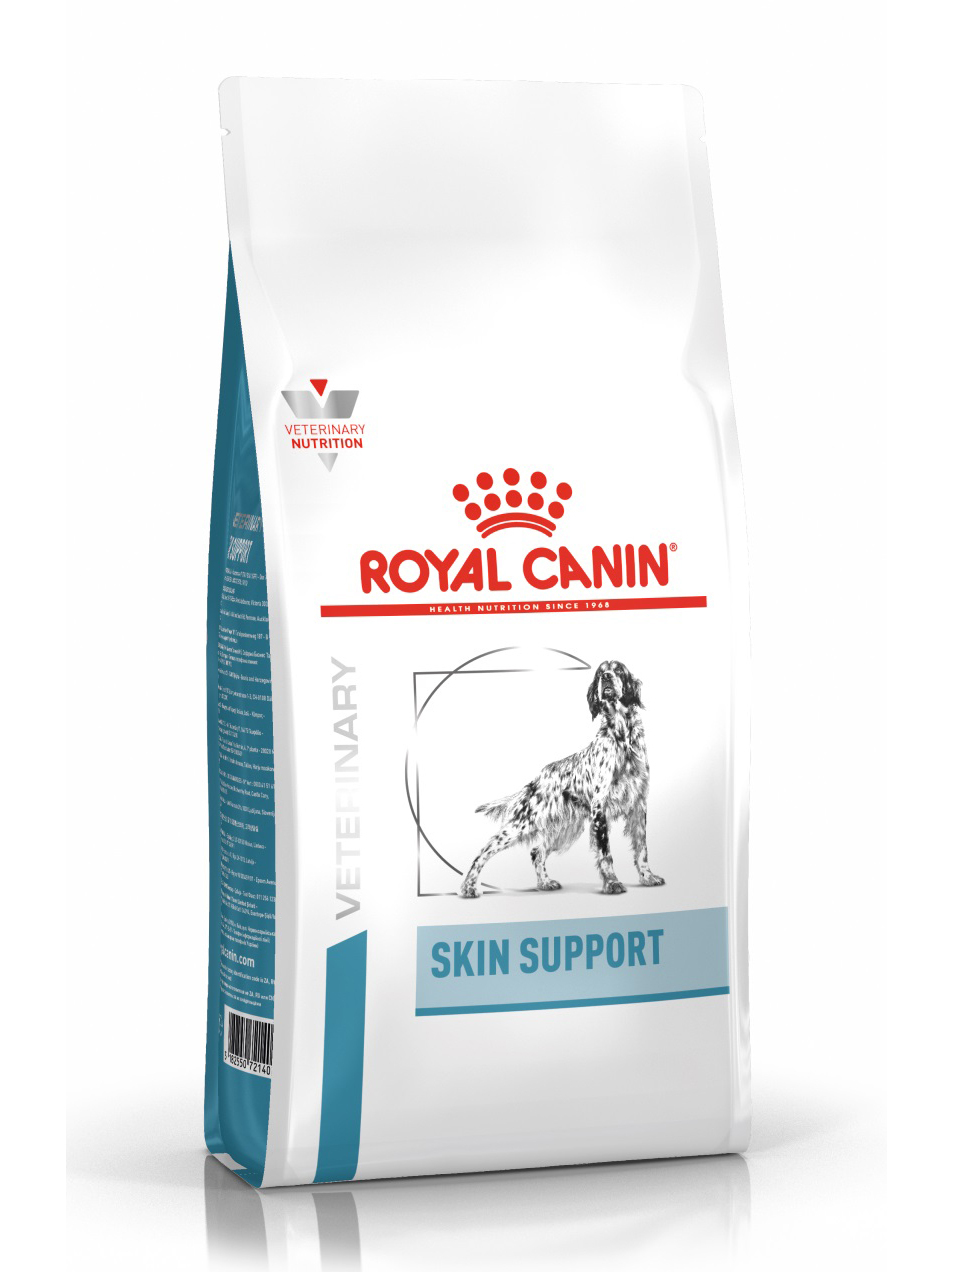 Royal Canin Skin Support Food For Dogs With Atopy And дерматозах, 7 Kg